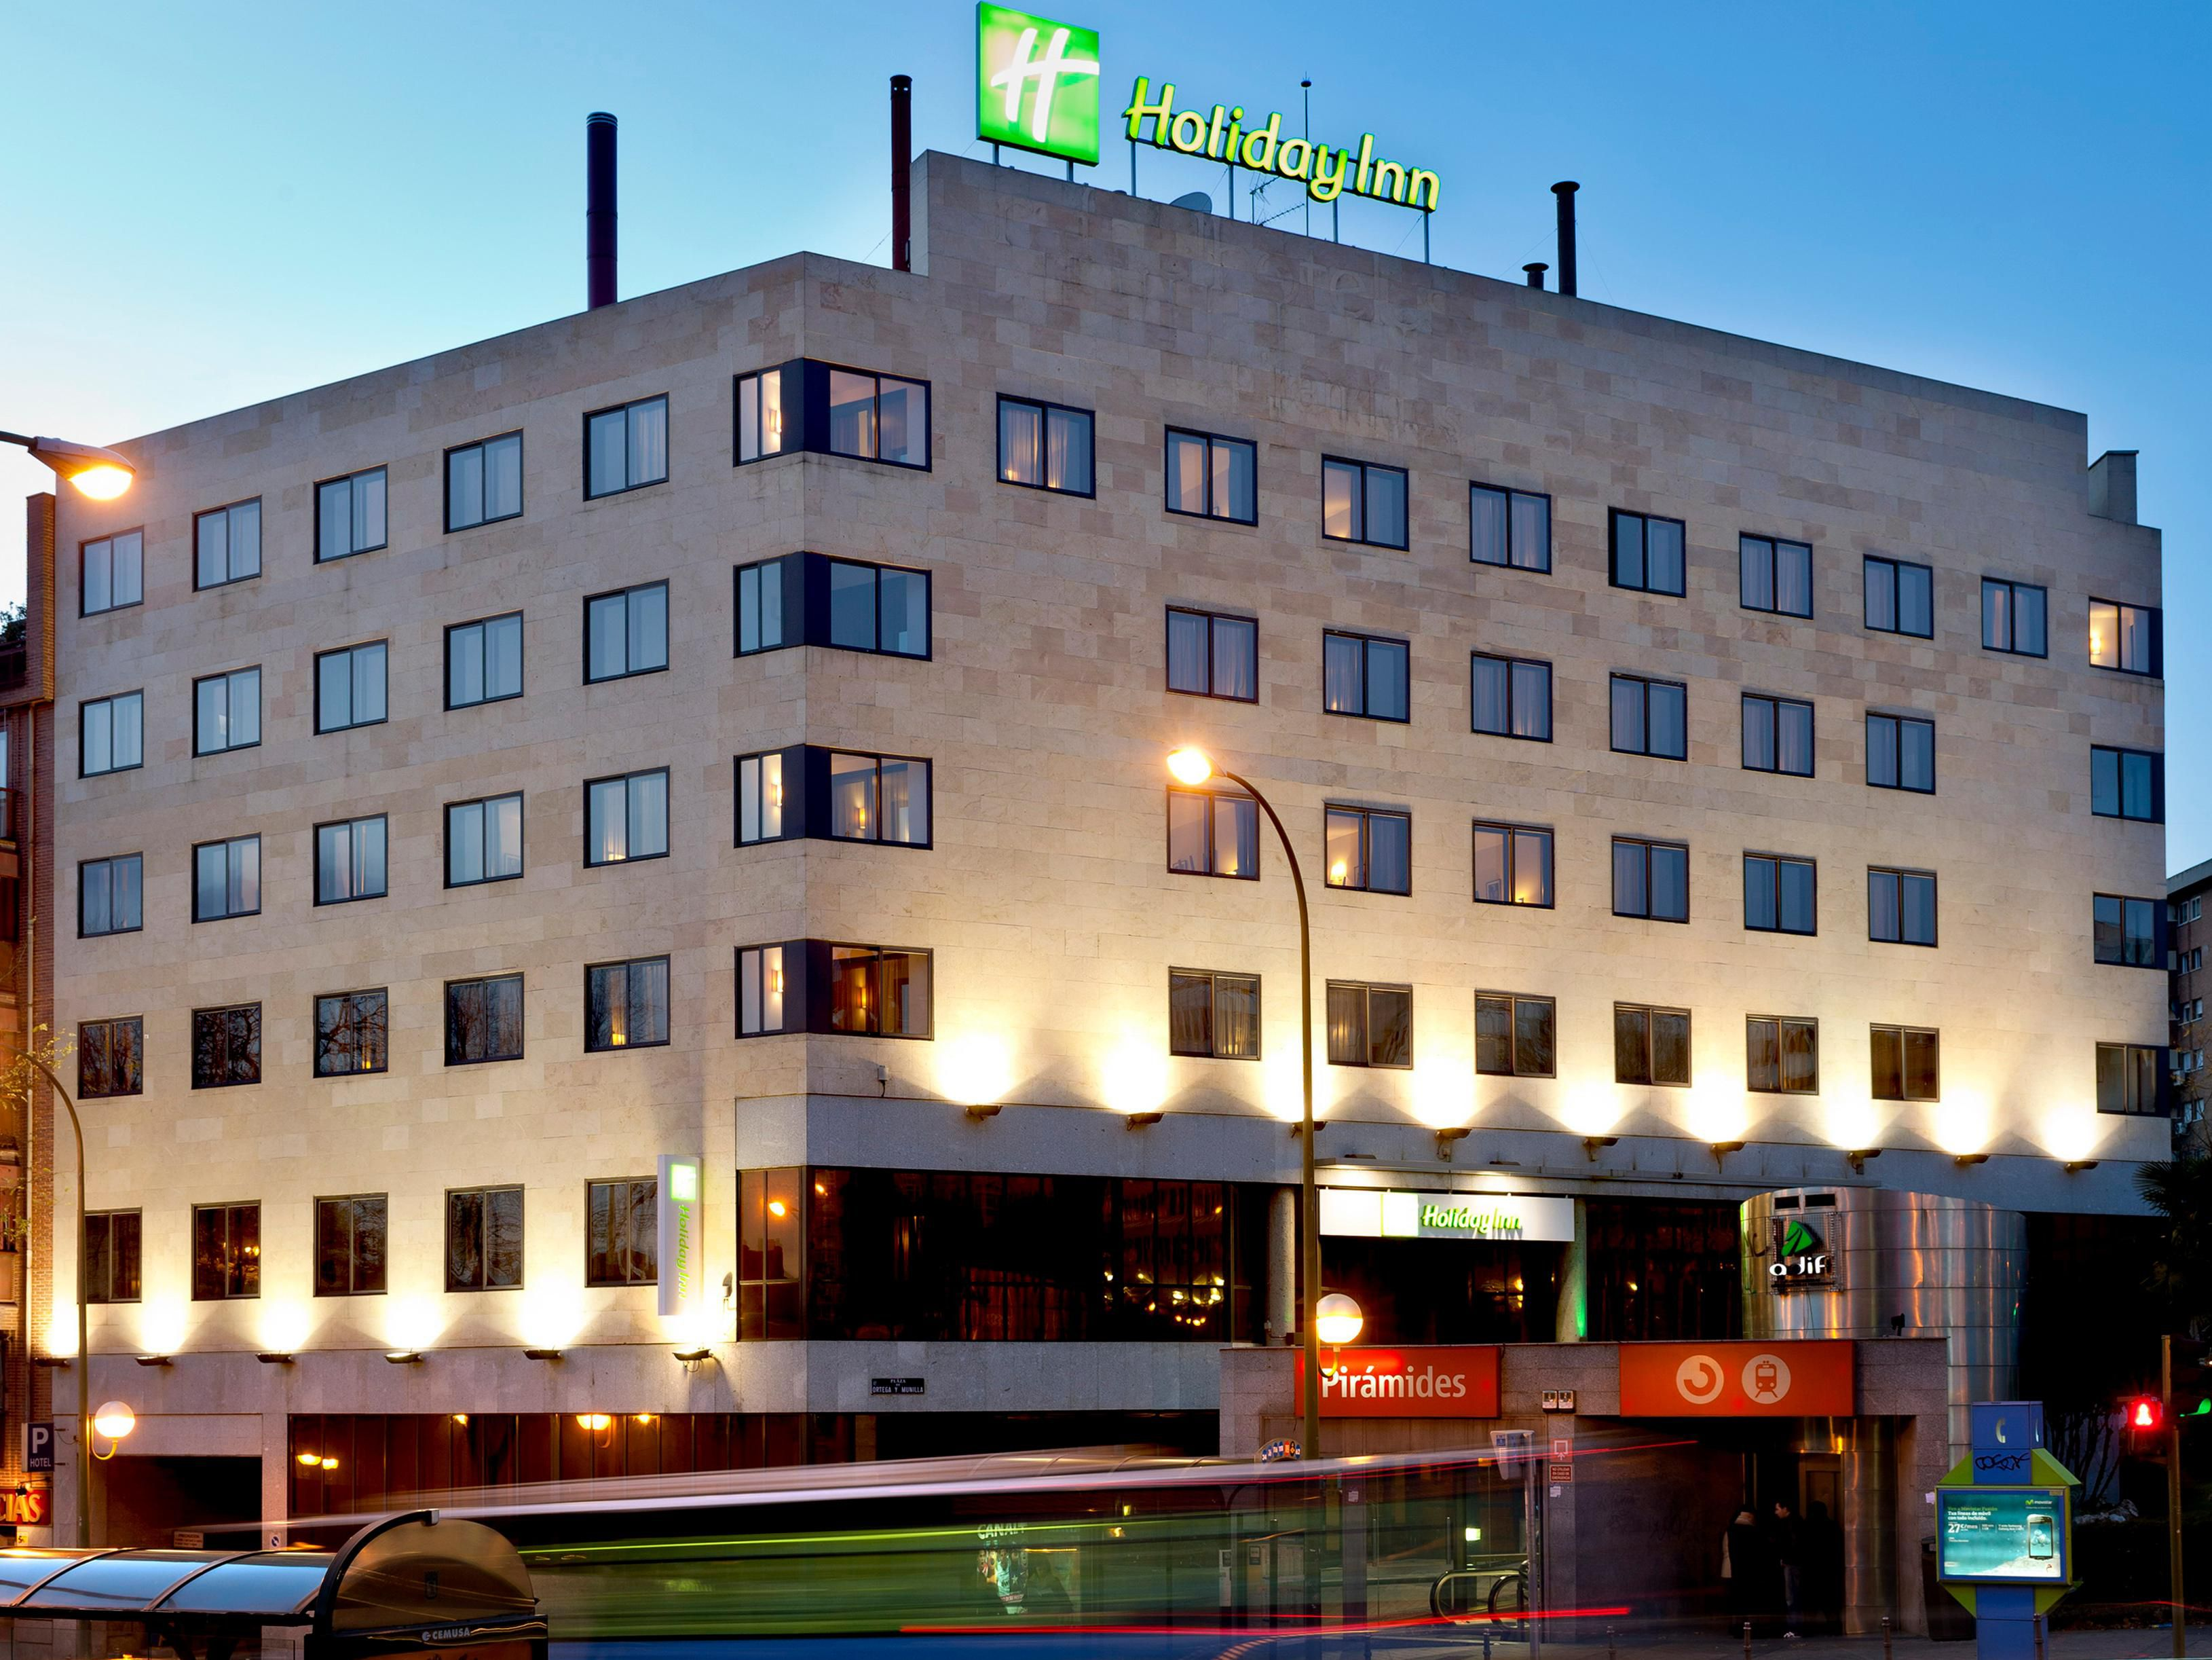 Hoteles en madrid centro holiday inn madrid piramides for Hoteles vanguardistas en madrid